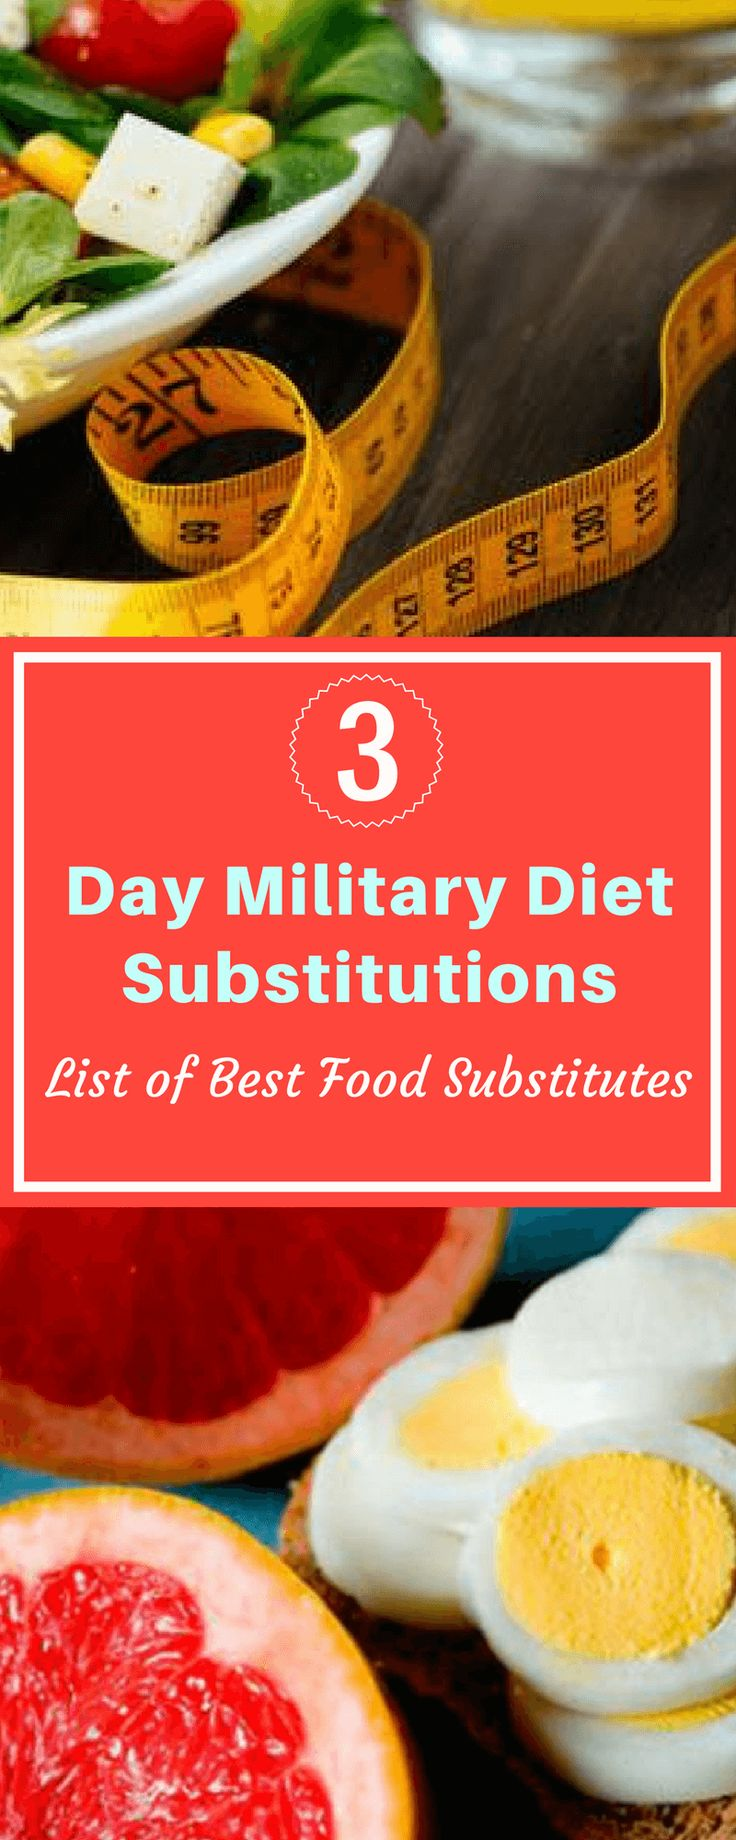 The Military Diet Substitutions 2019 | All You Need To Know